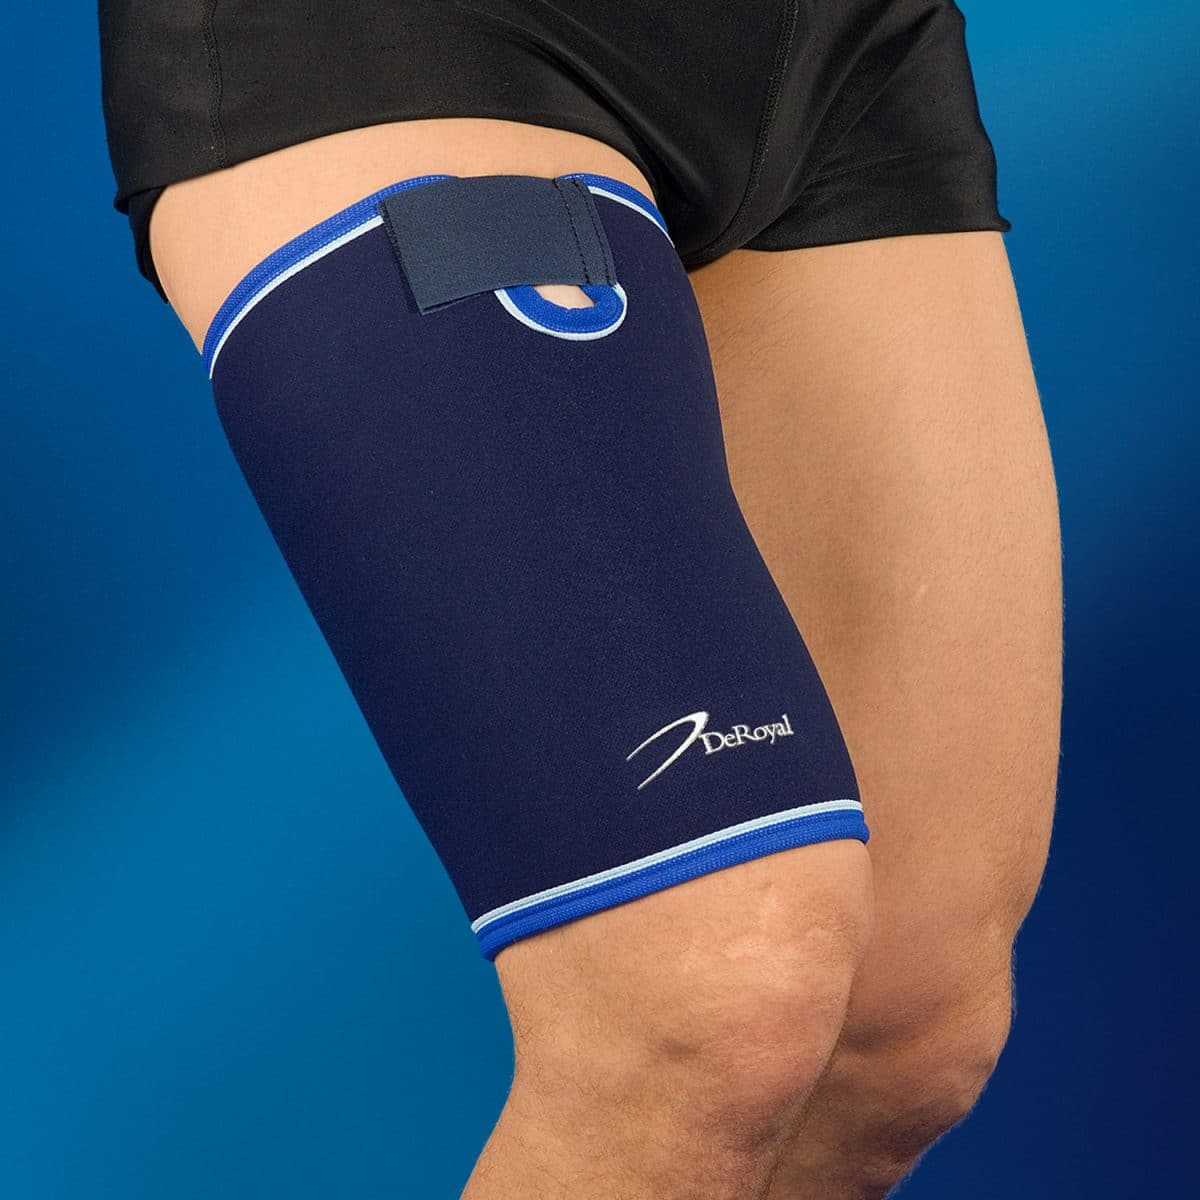 """Bandage compression cuisse """"Mediroyal"""" - Taille M"""